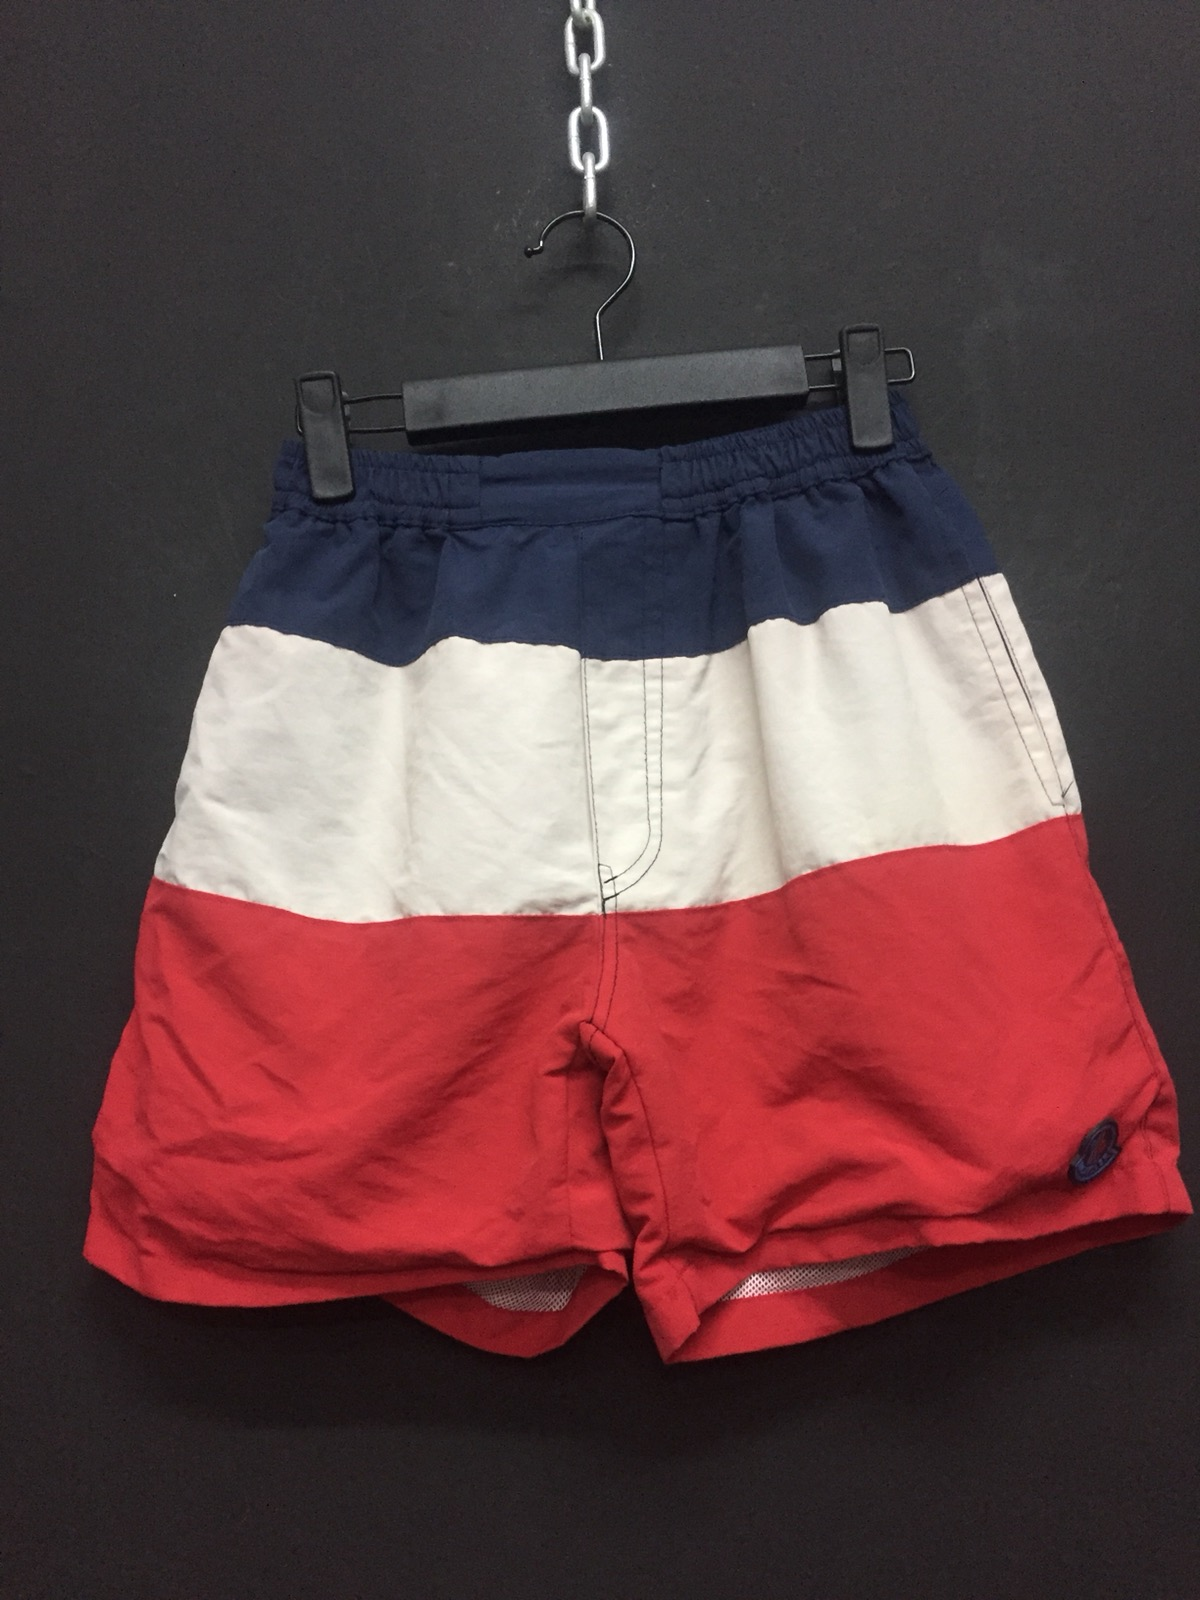 fafb2db0b689 Moncler 🔥need Gone Today🔥 Moncler Men s Swimming Shorts Men s ...